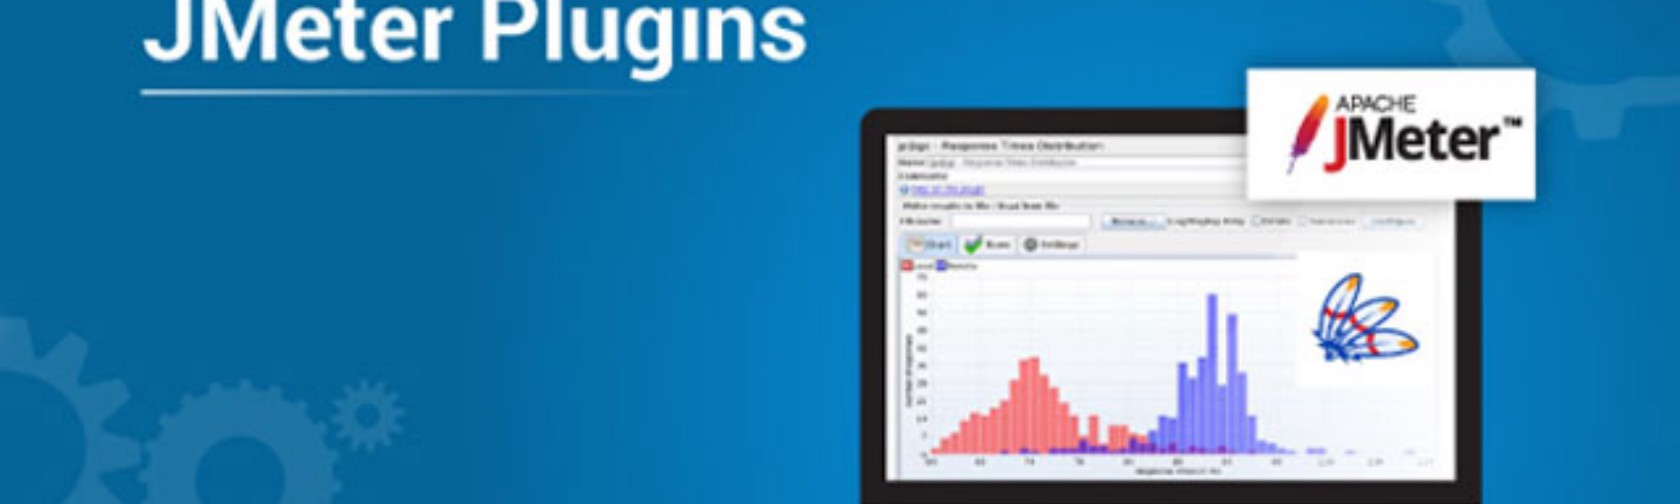 JMeter Plugins - A Comprehensive Guide To The Plugins Manager